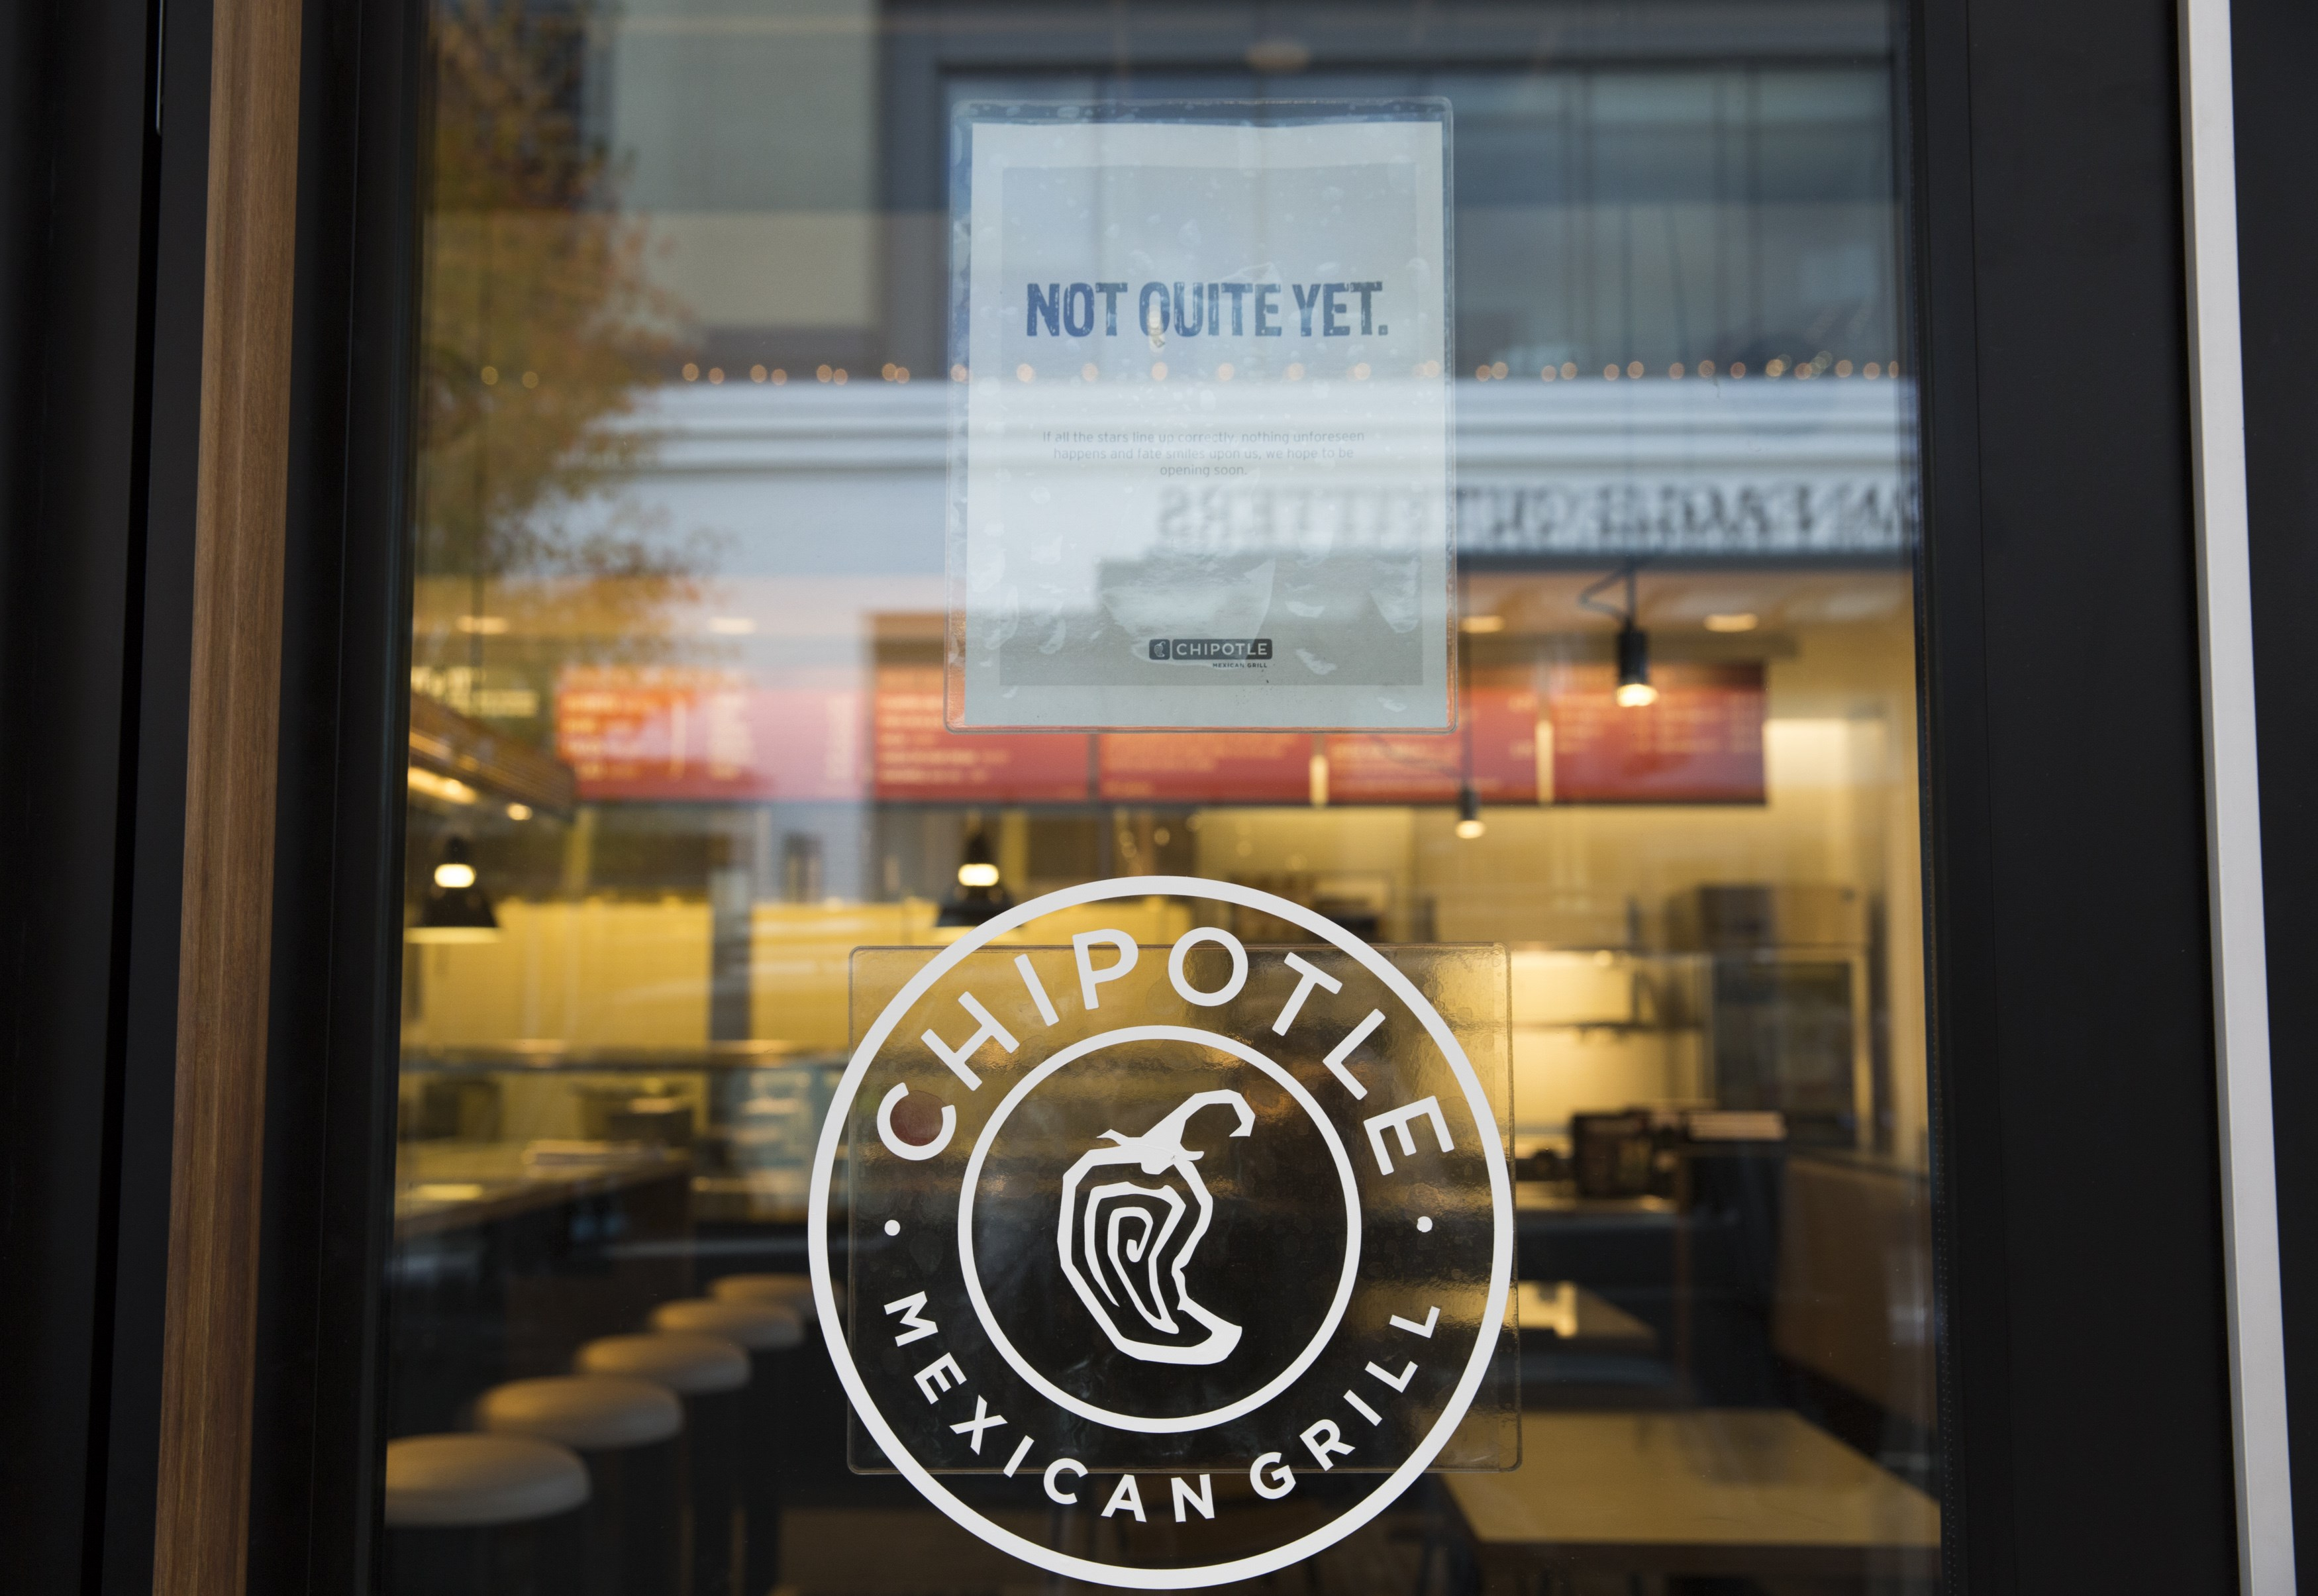 US-RESTAURANTS-HEALTH-FOOD-SAFETY-CHIPOTLE